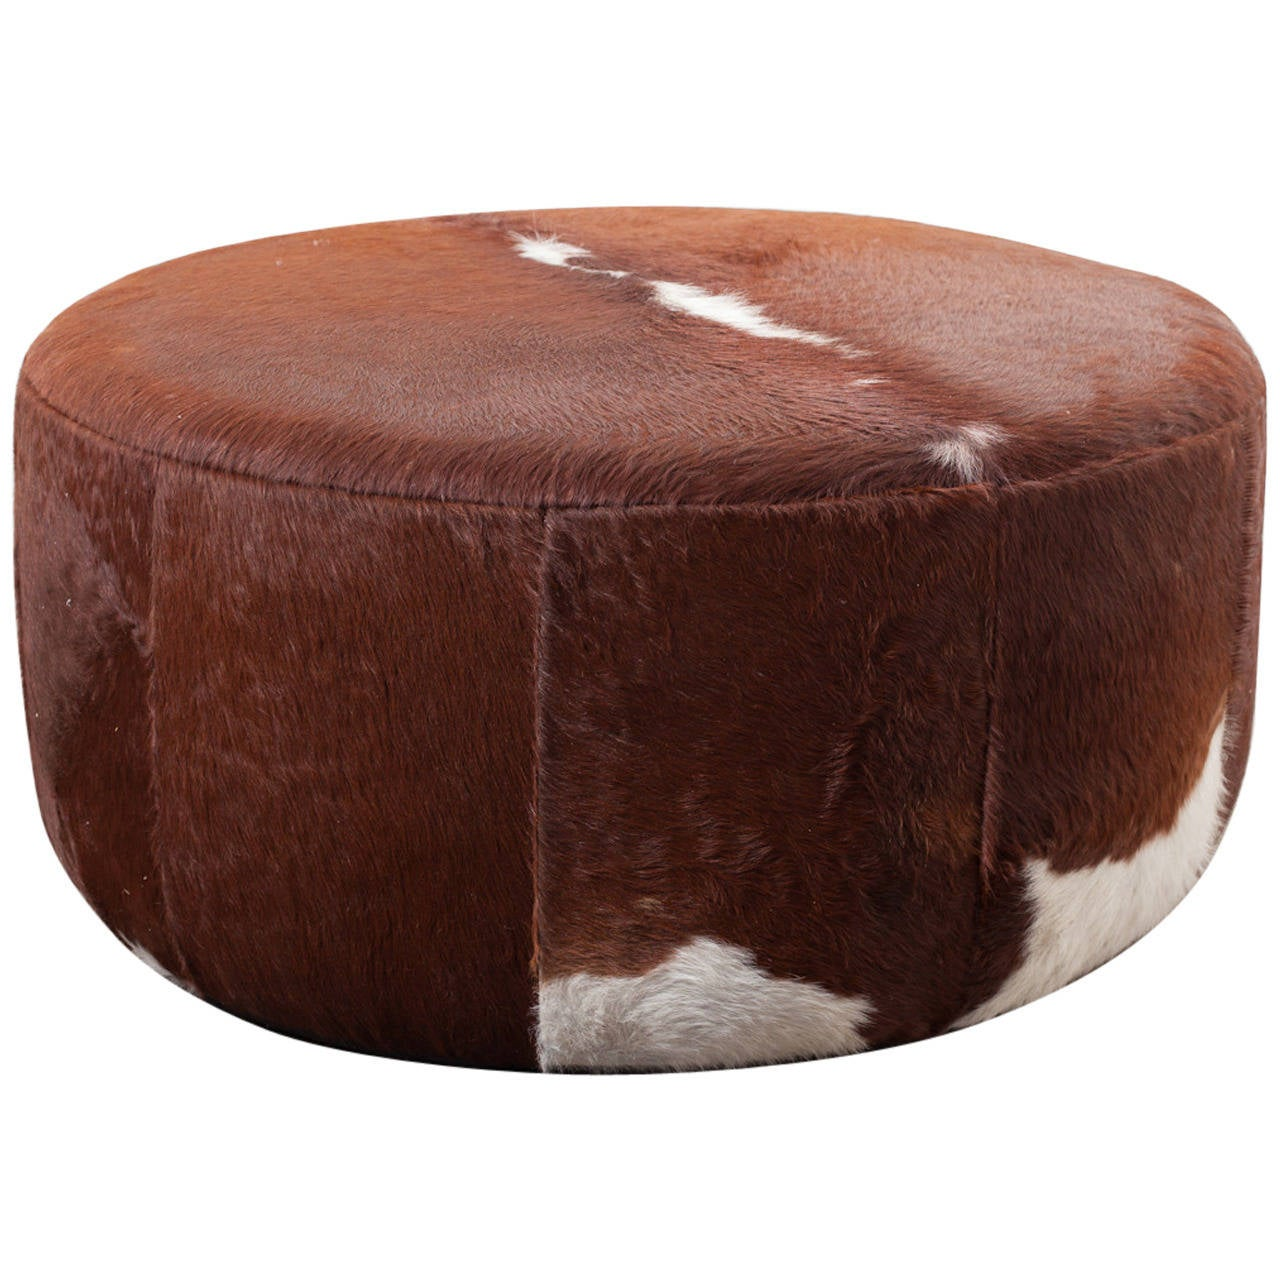 Three Foot Wide Vintage Inspired Cowhide Ottoman Or Coffee Table For